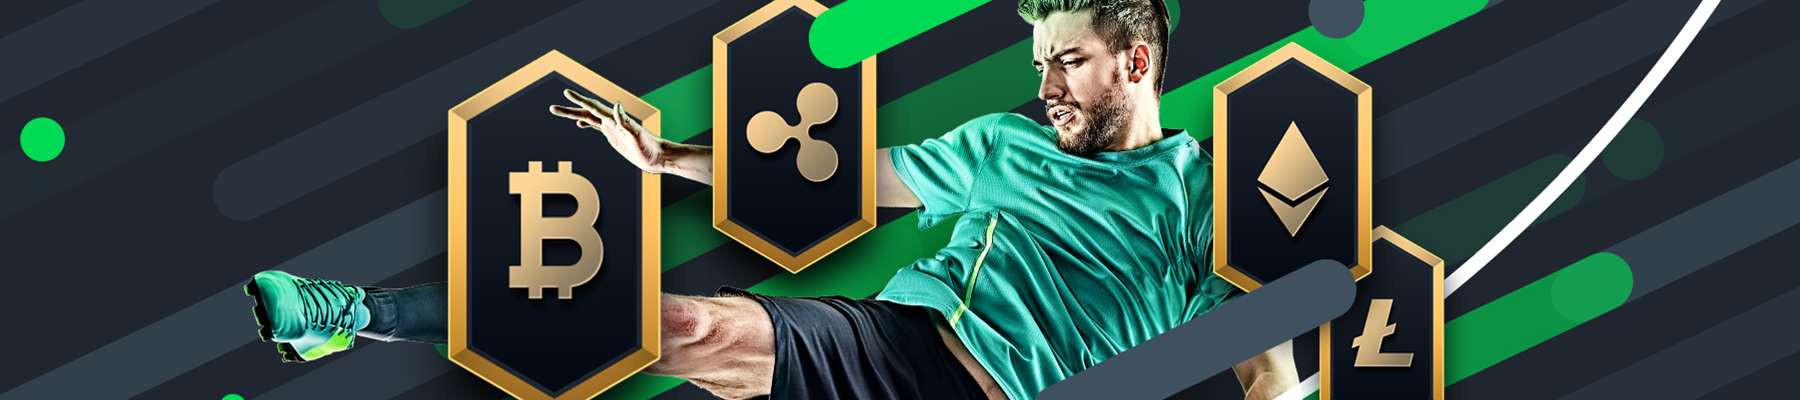 Crypto Banner Sports 3